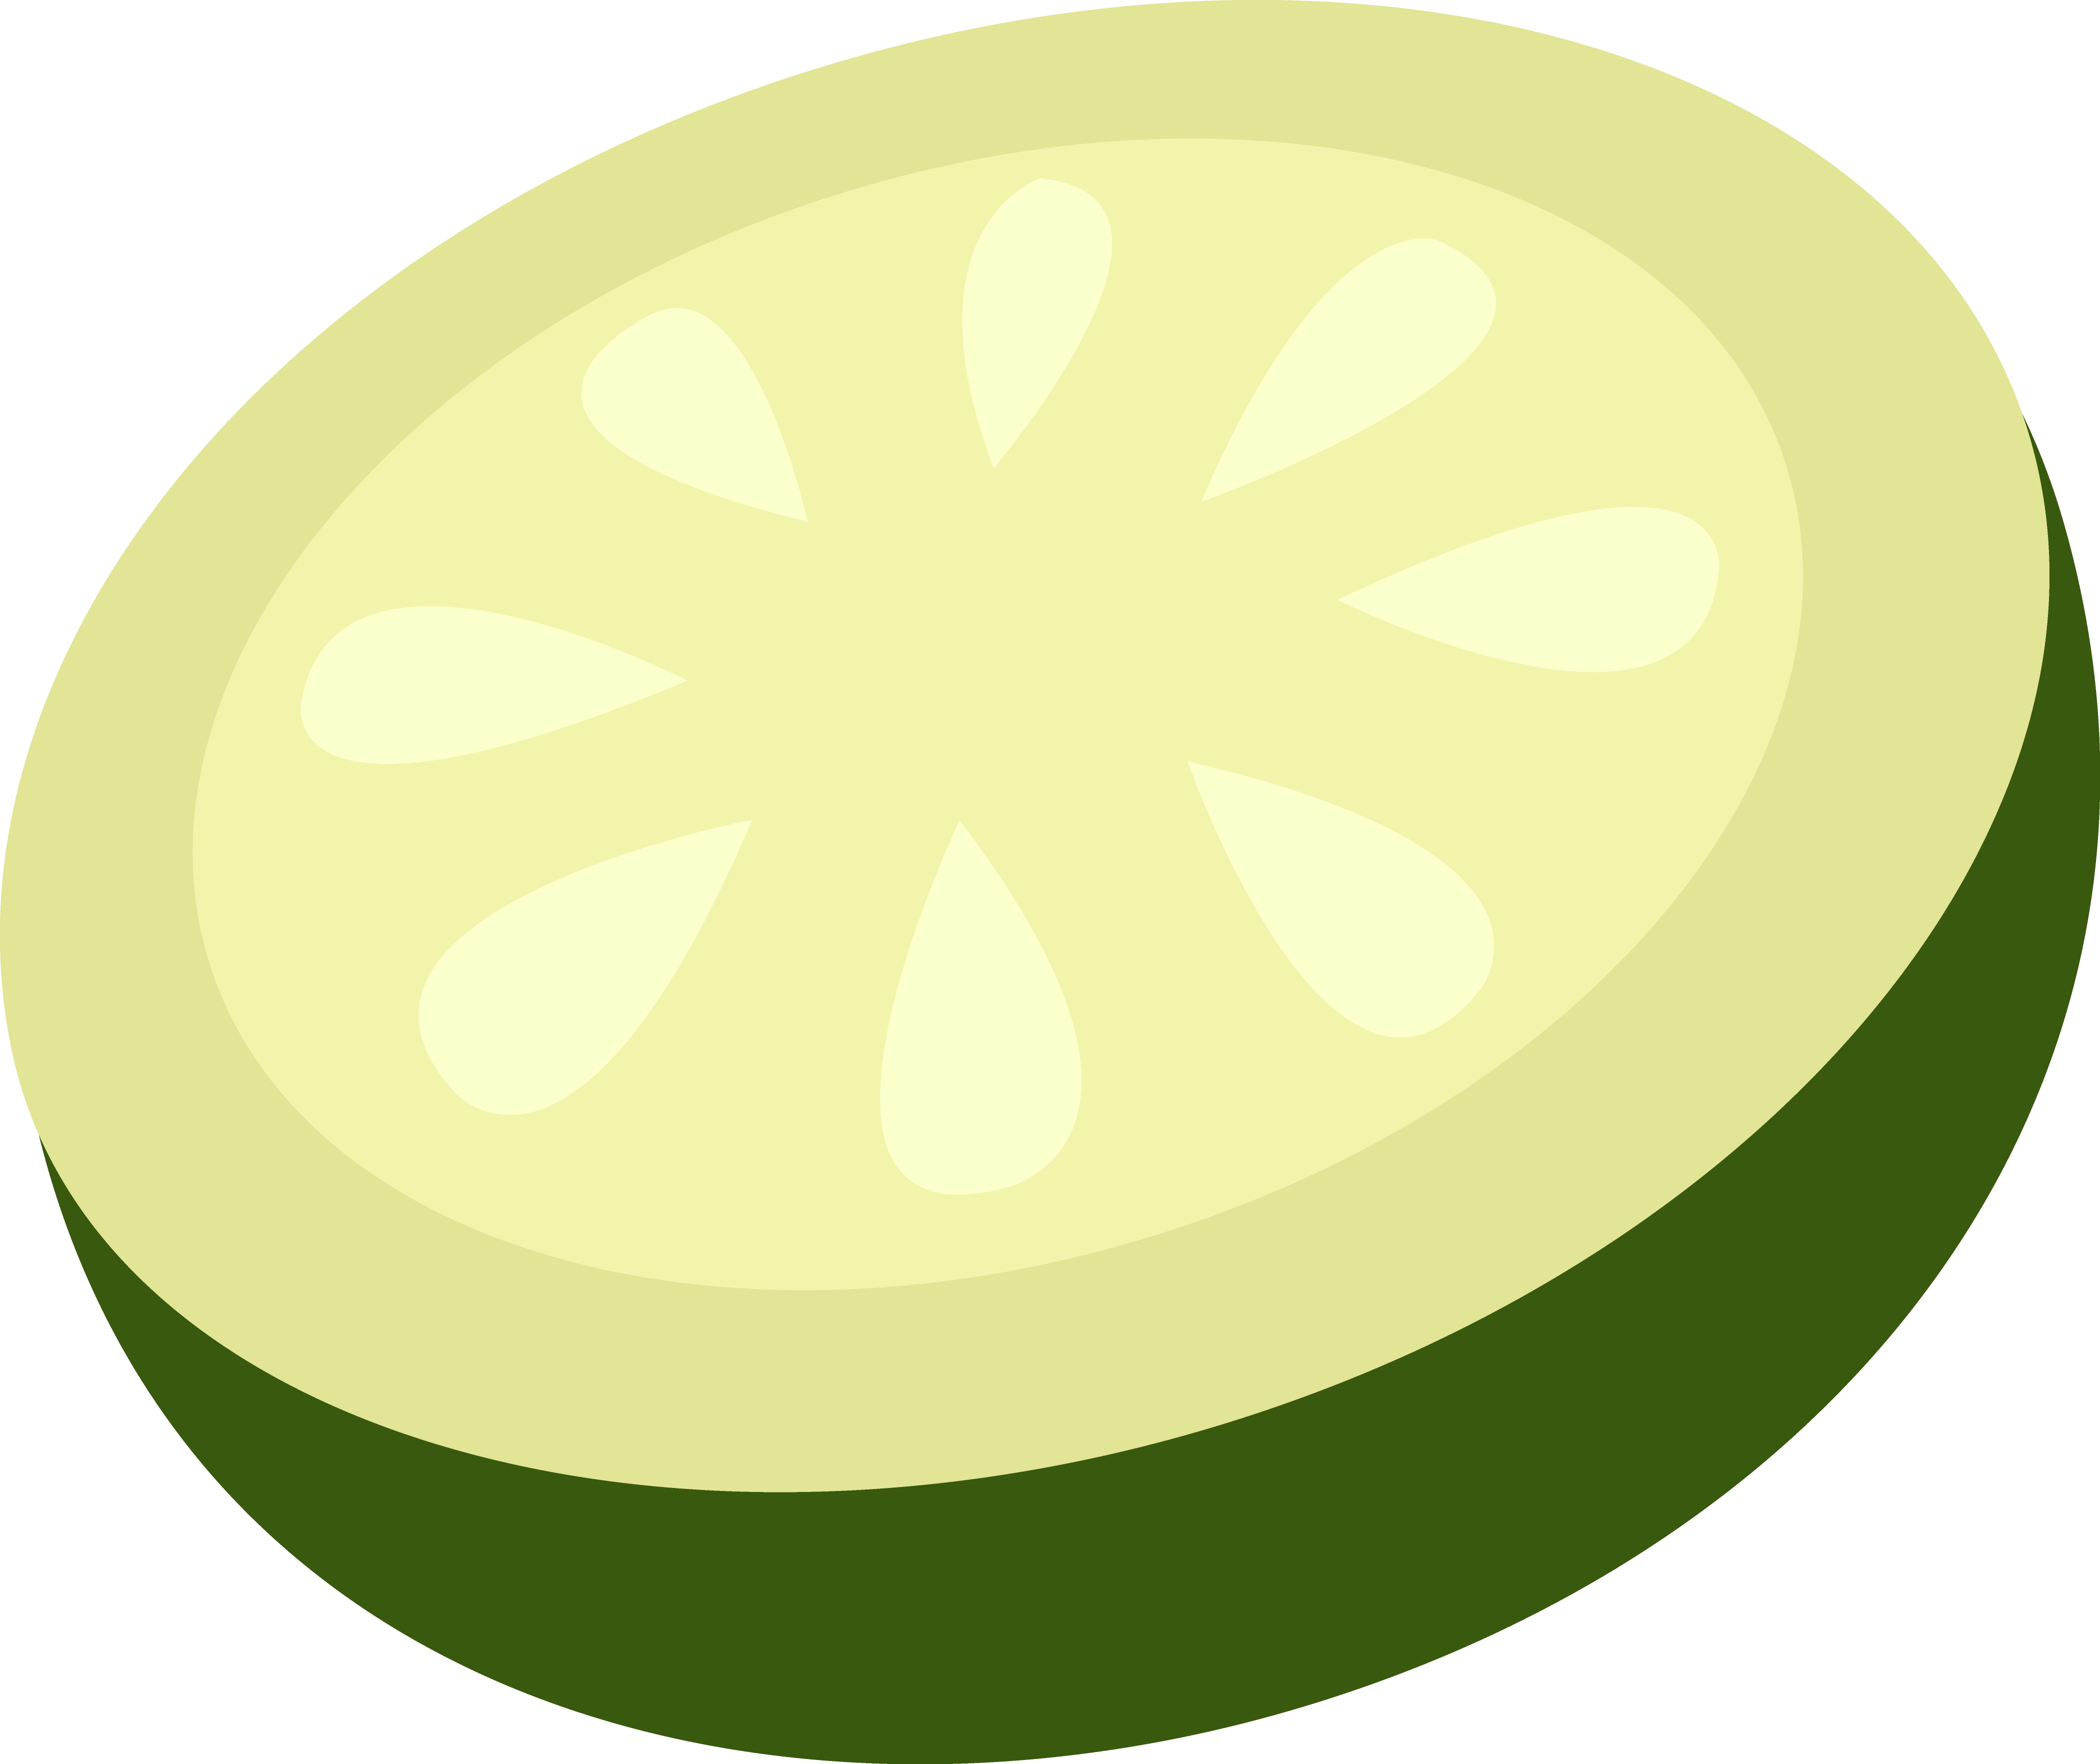 Cucumber clipart cucumber slice #1 - Cucumber Slice PNG Black And White